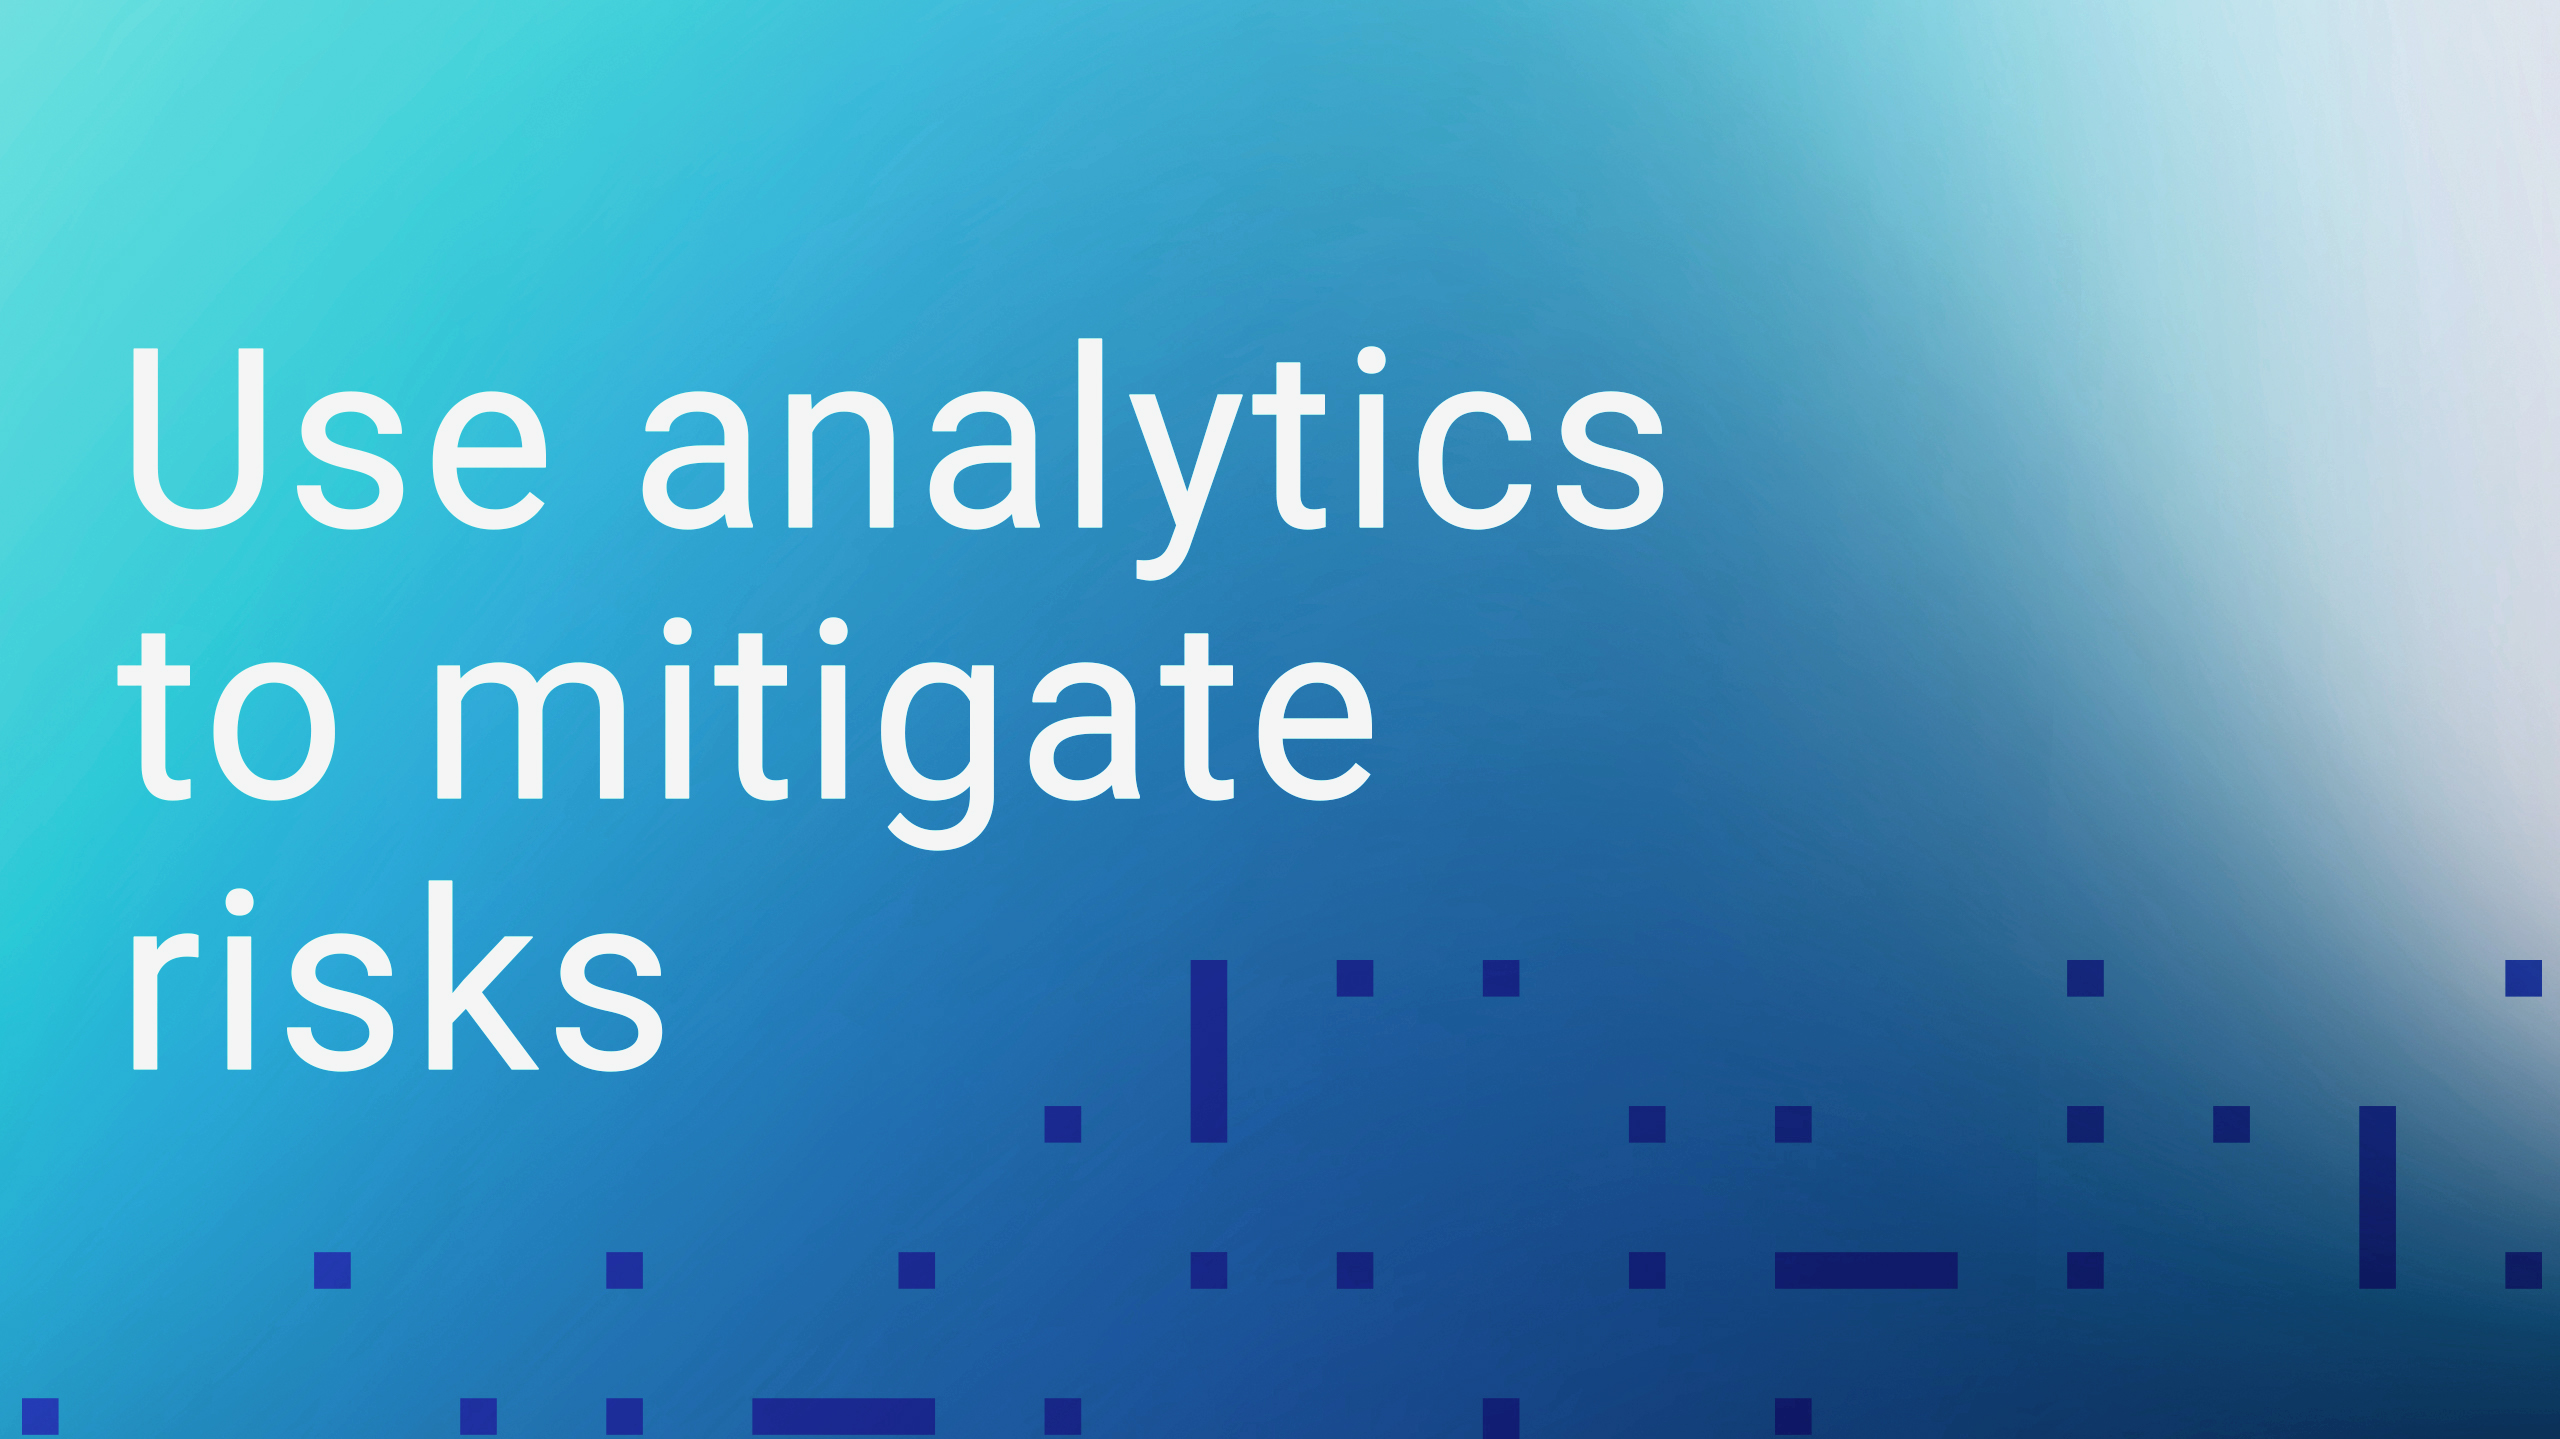 Use analytics to mitigate risks